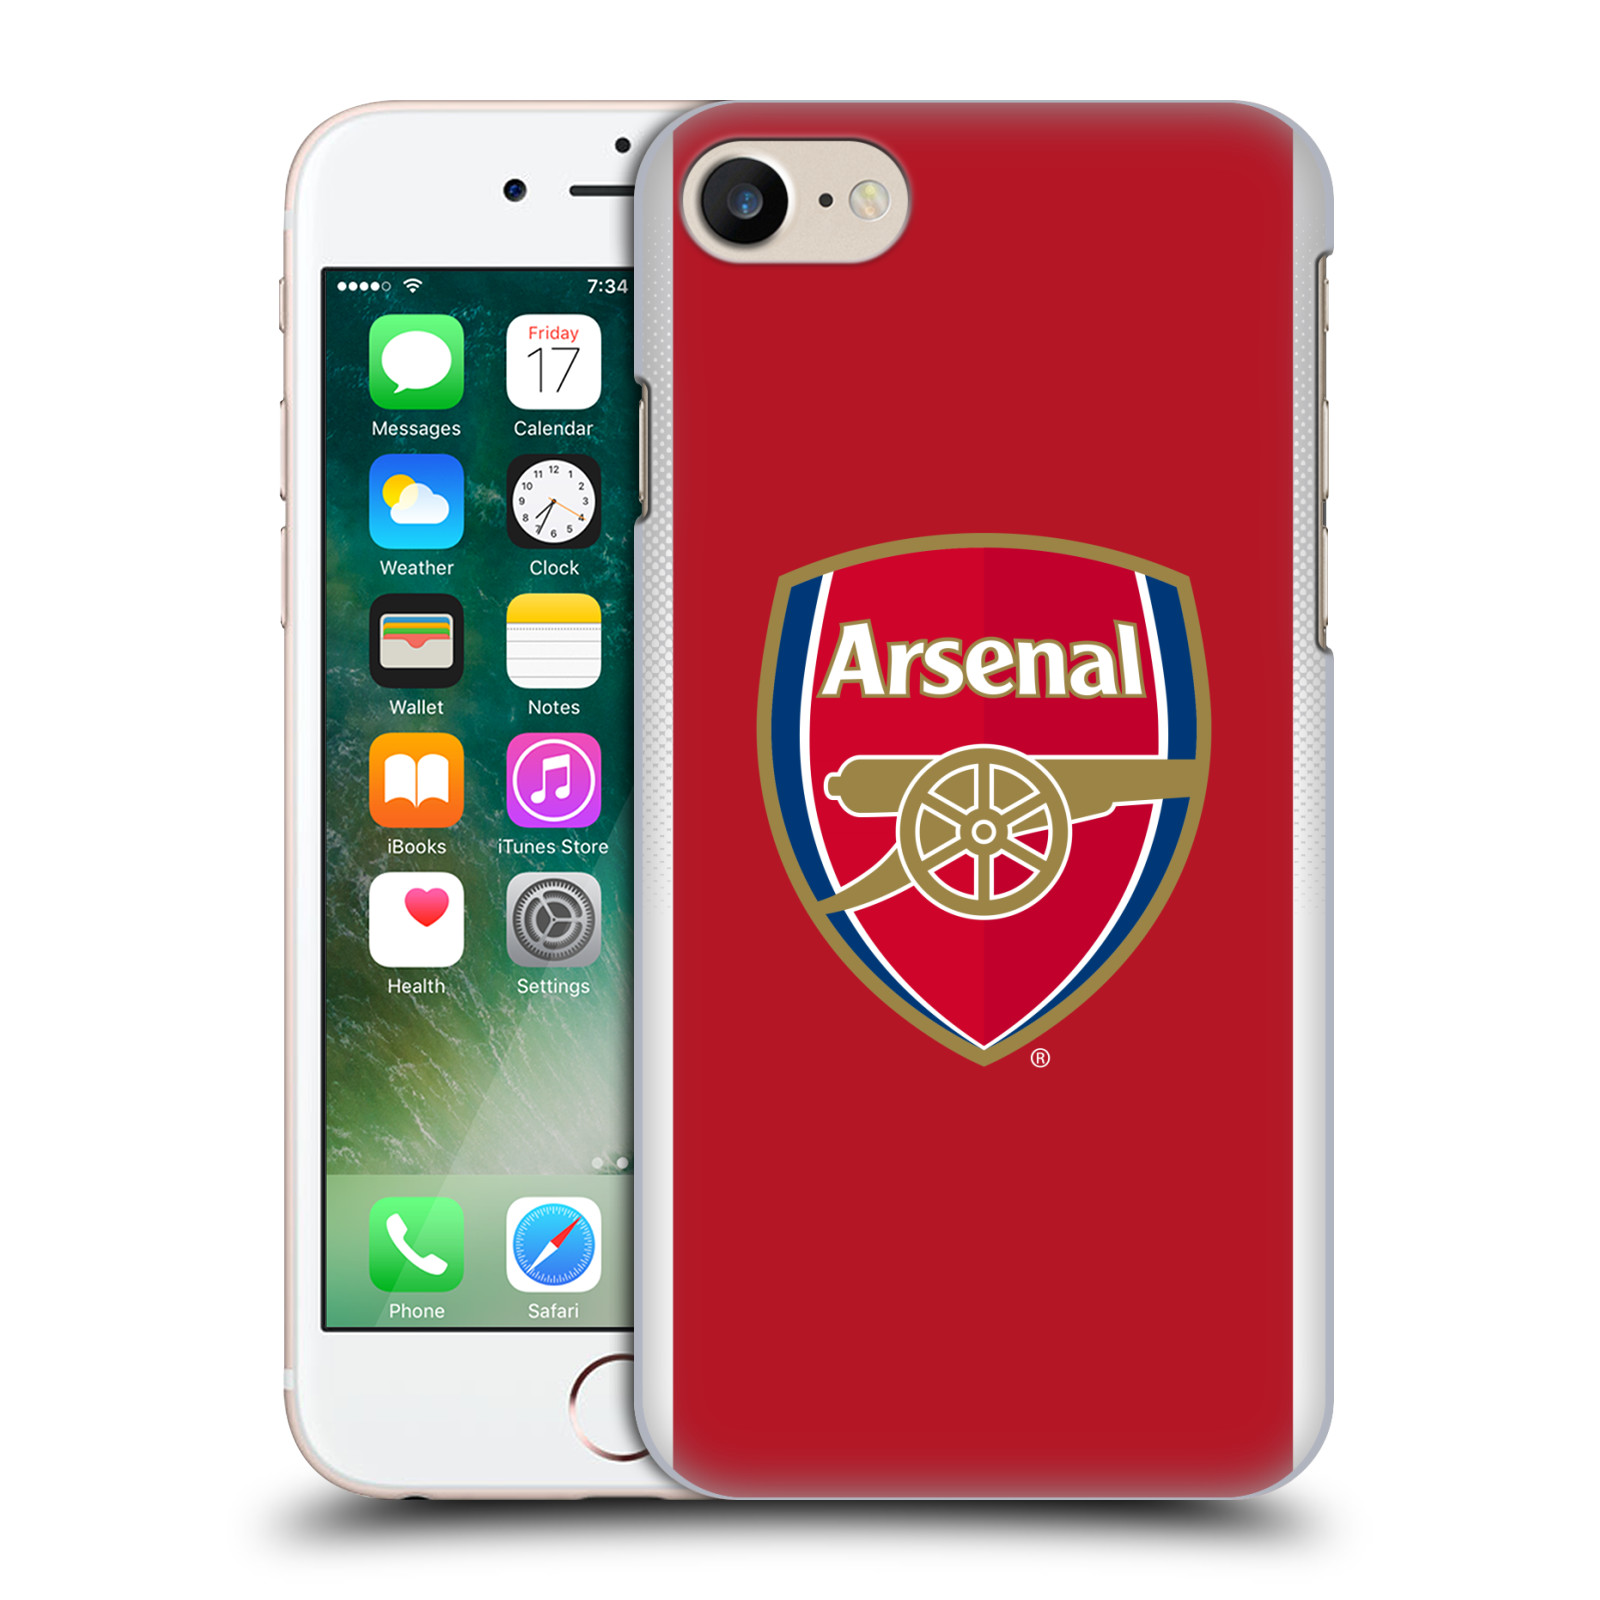 Plastové pouzdro na mobil Apple iPhone 7 - Head Case - Arsenal FC - Logo klubu